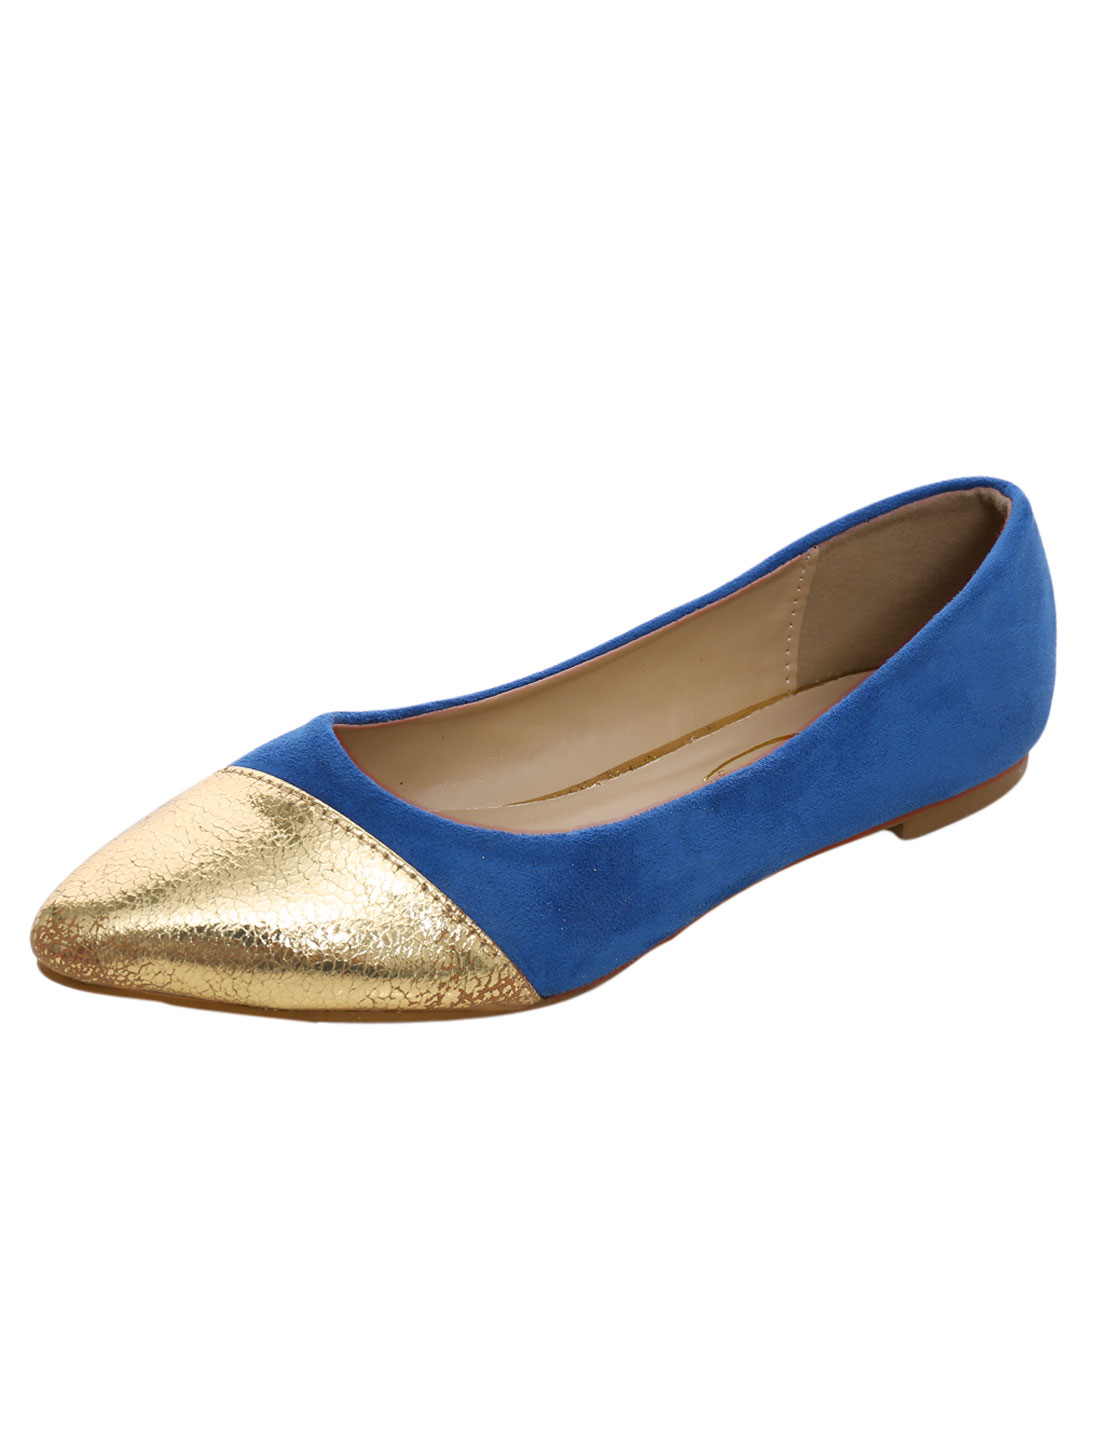 Lady Color Blocking Panel Padded Insole Leisure Flats Royal Blue US 9-9.5